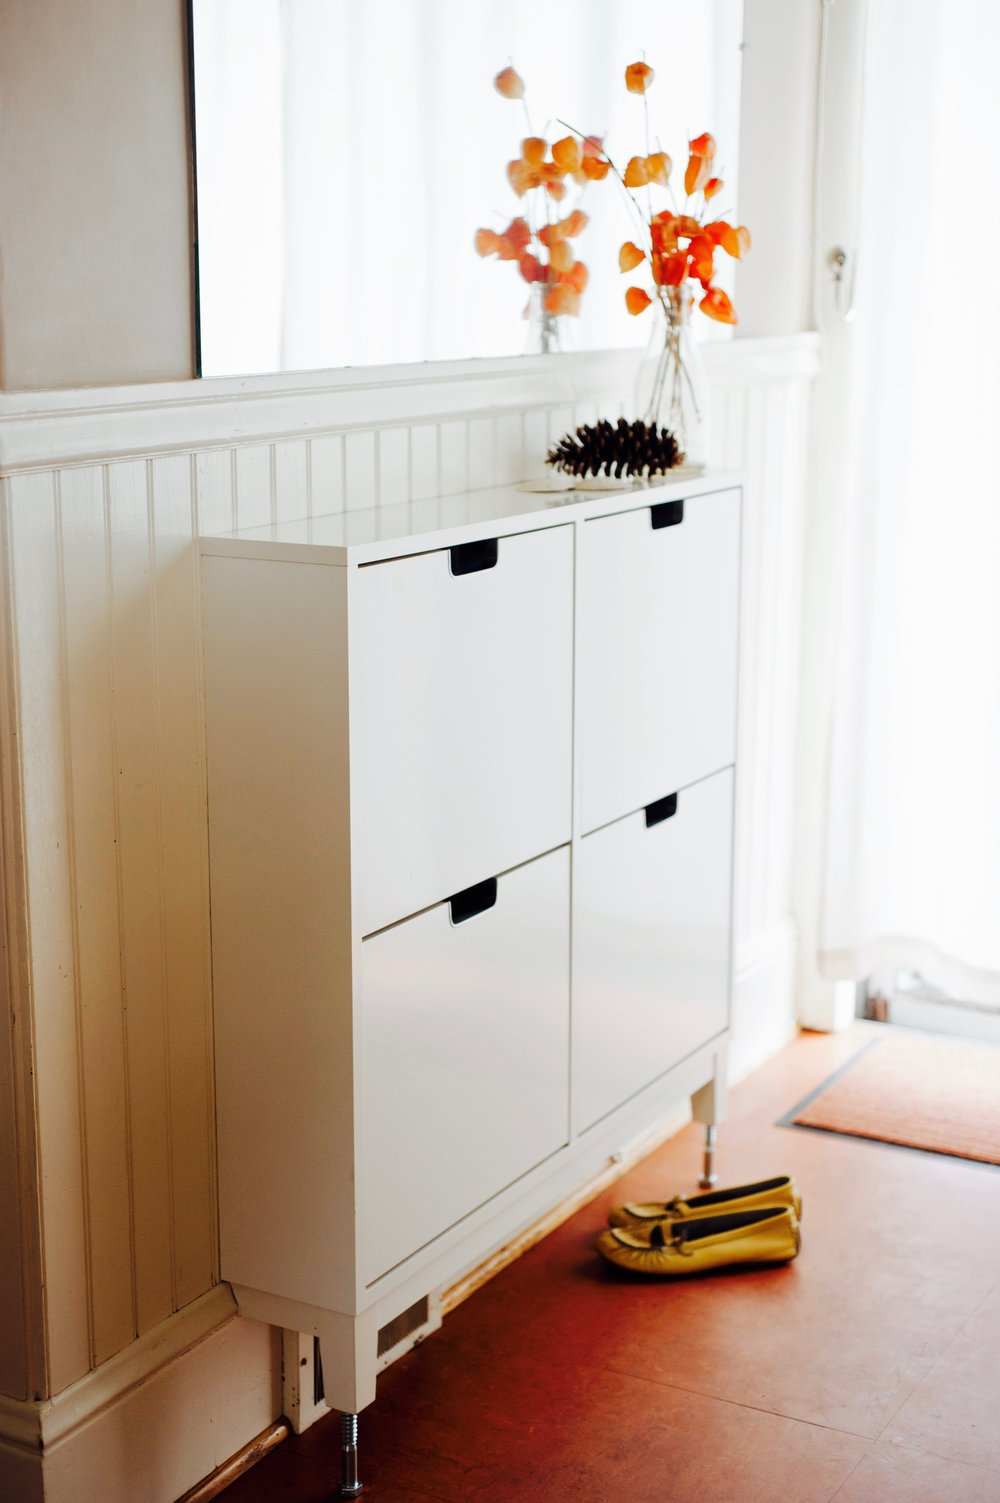 AFTER: Ikea shoe shelf is simple and tidy, and its shiny white surface helps brighten up the whole space.